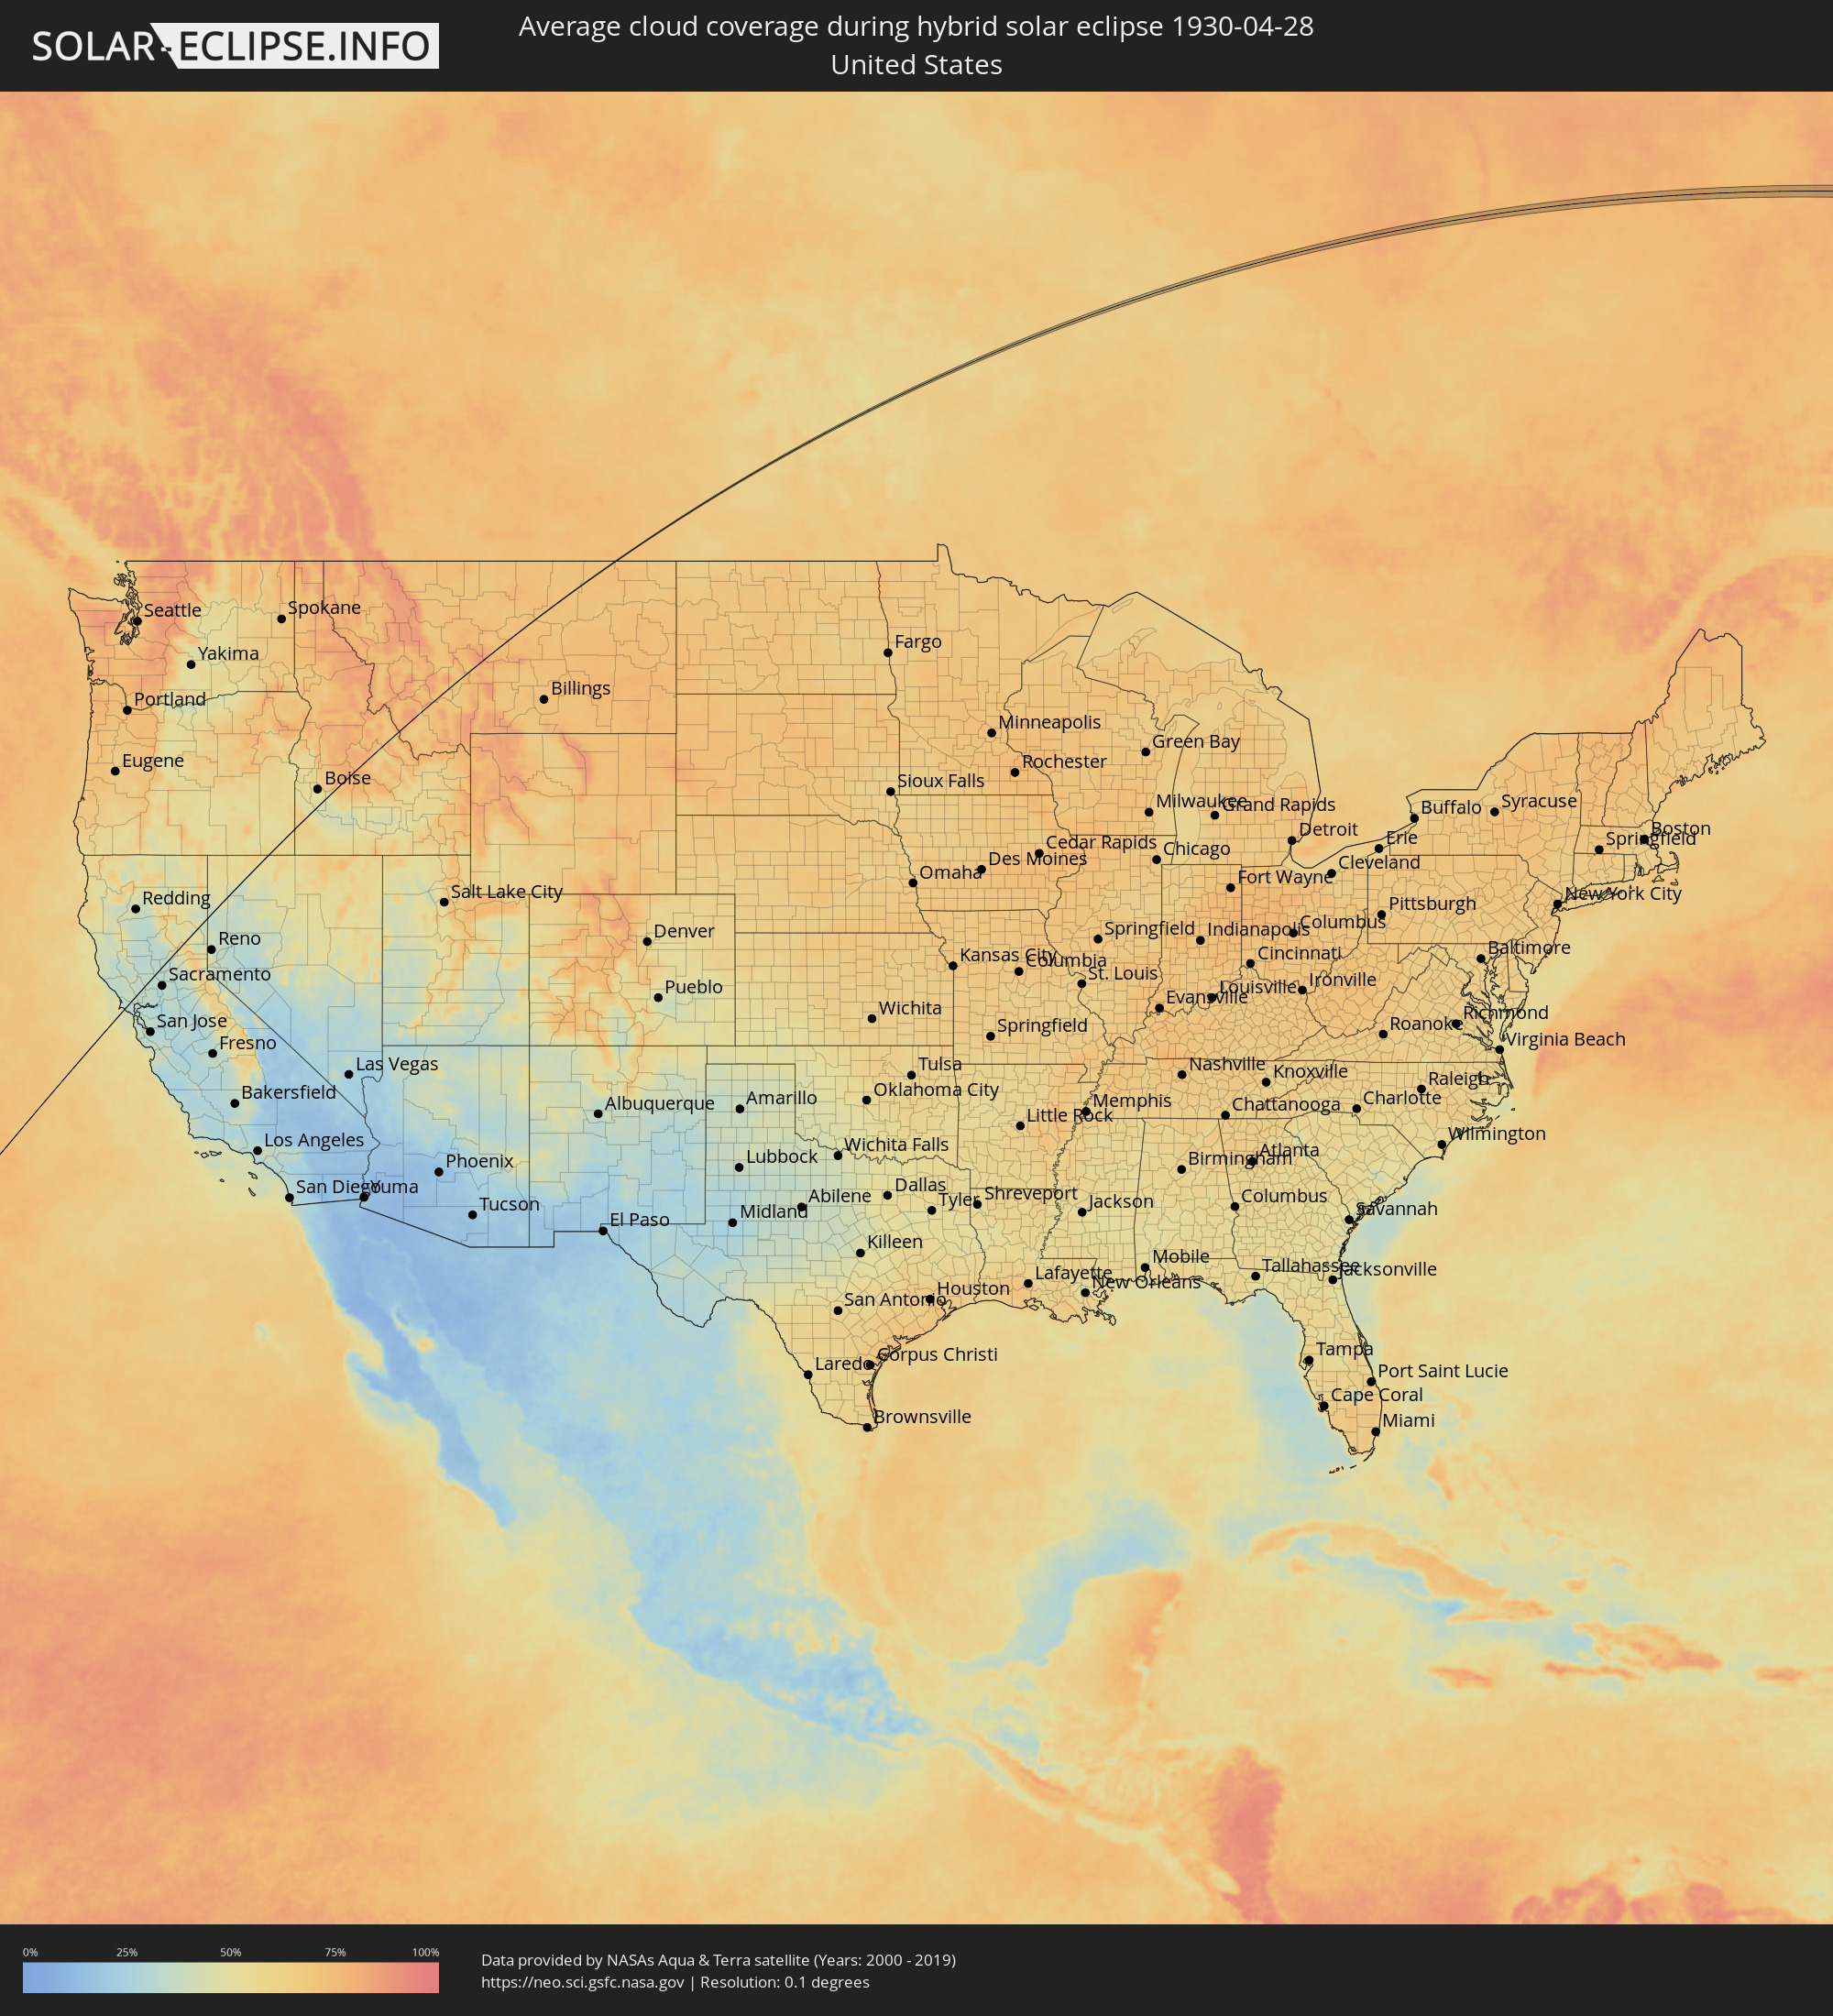 Average Cloud Cover Map Us Click On Map To View Gallery Slide - Us cloud cover map